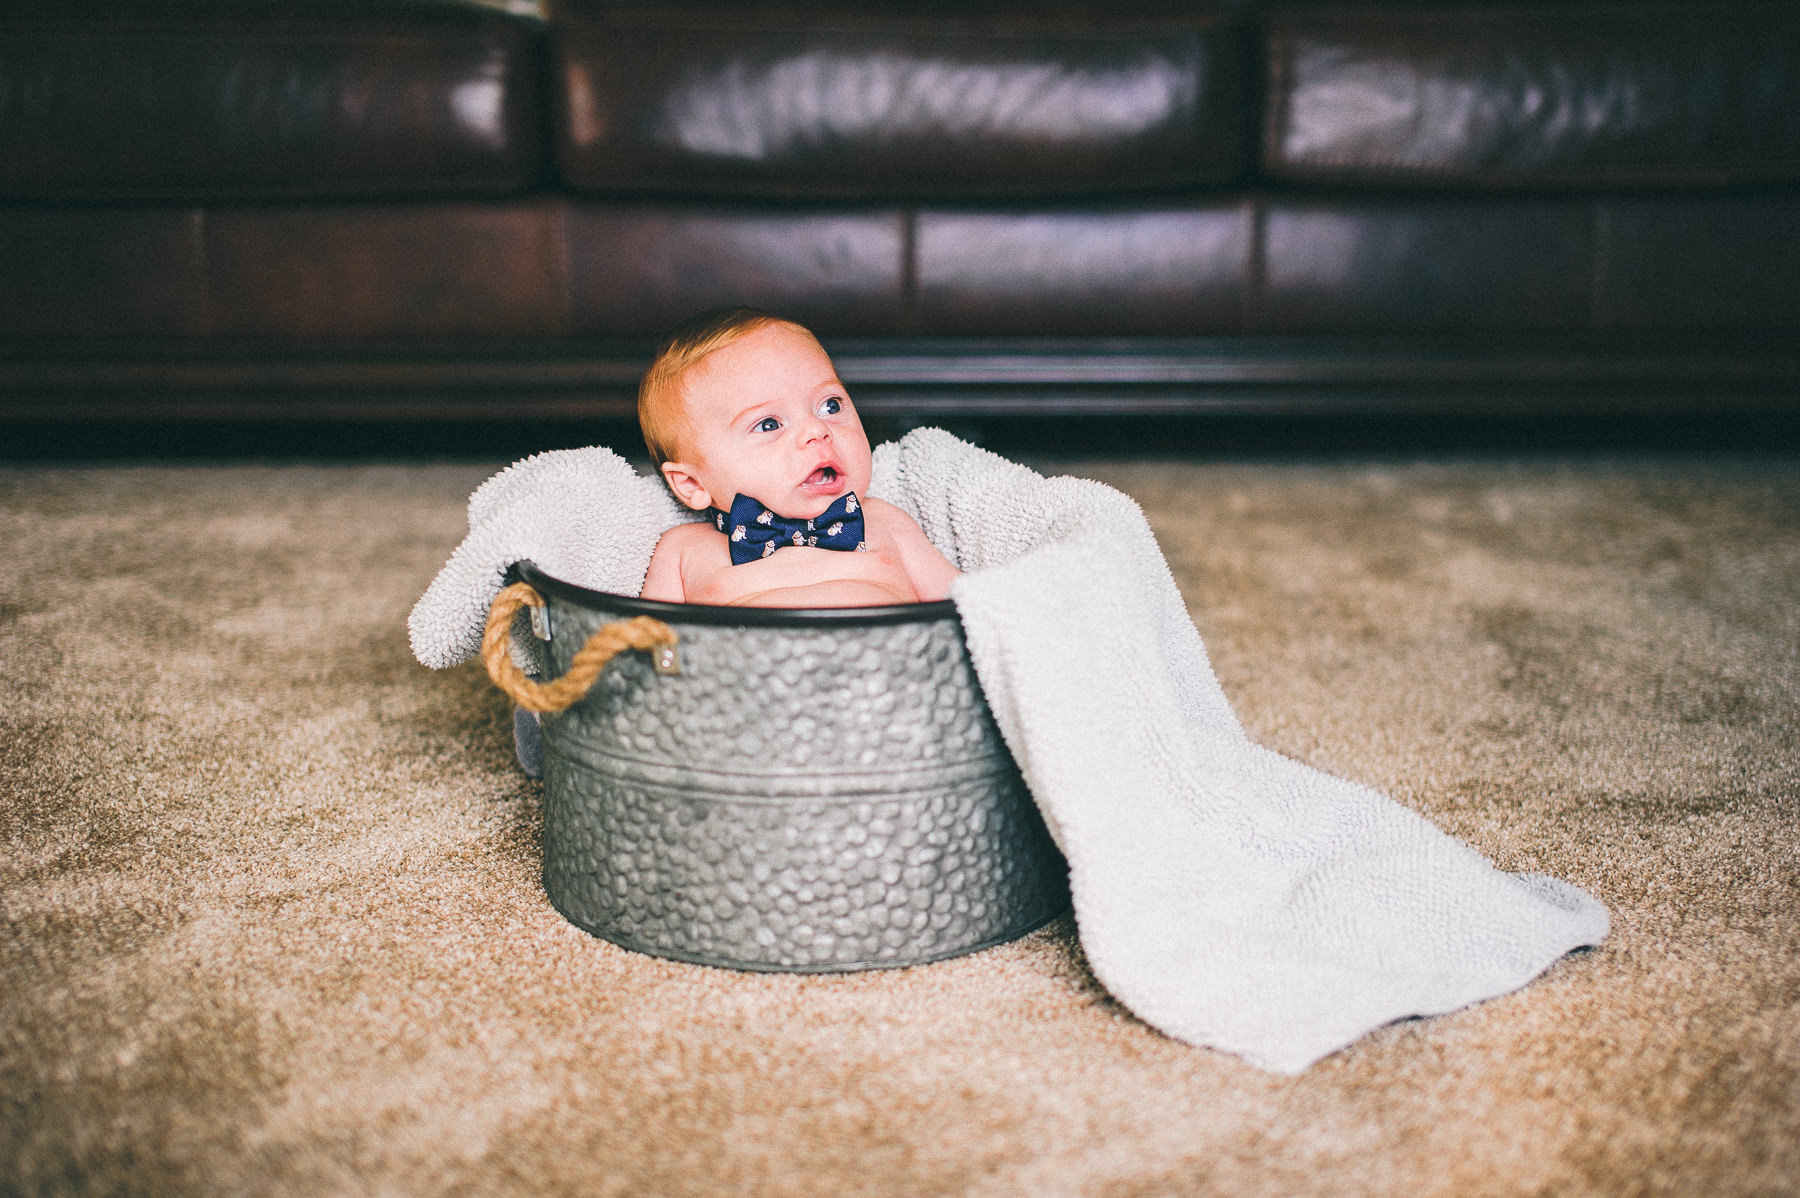 breighton-and-basette-photography-copyrighted-image-blog-croix-newborn-010.jpg